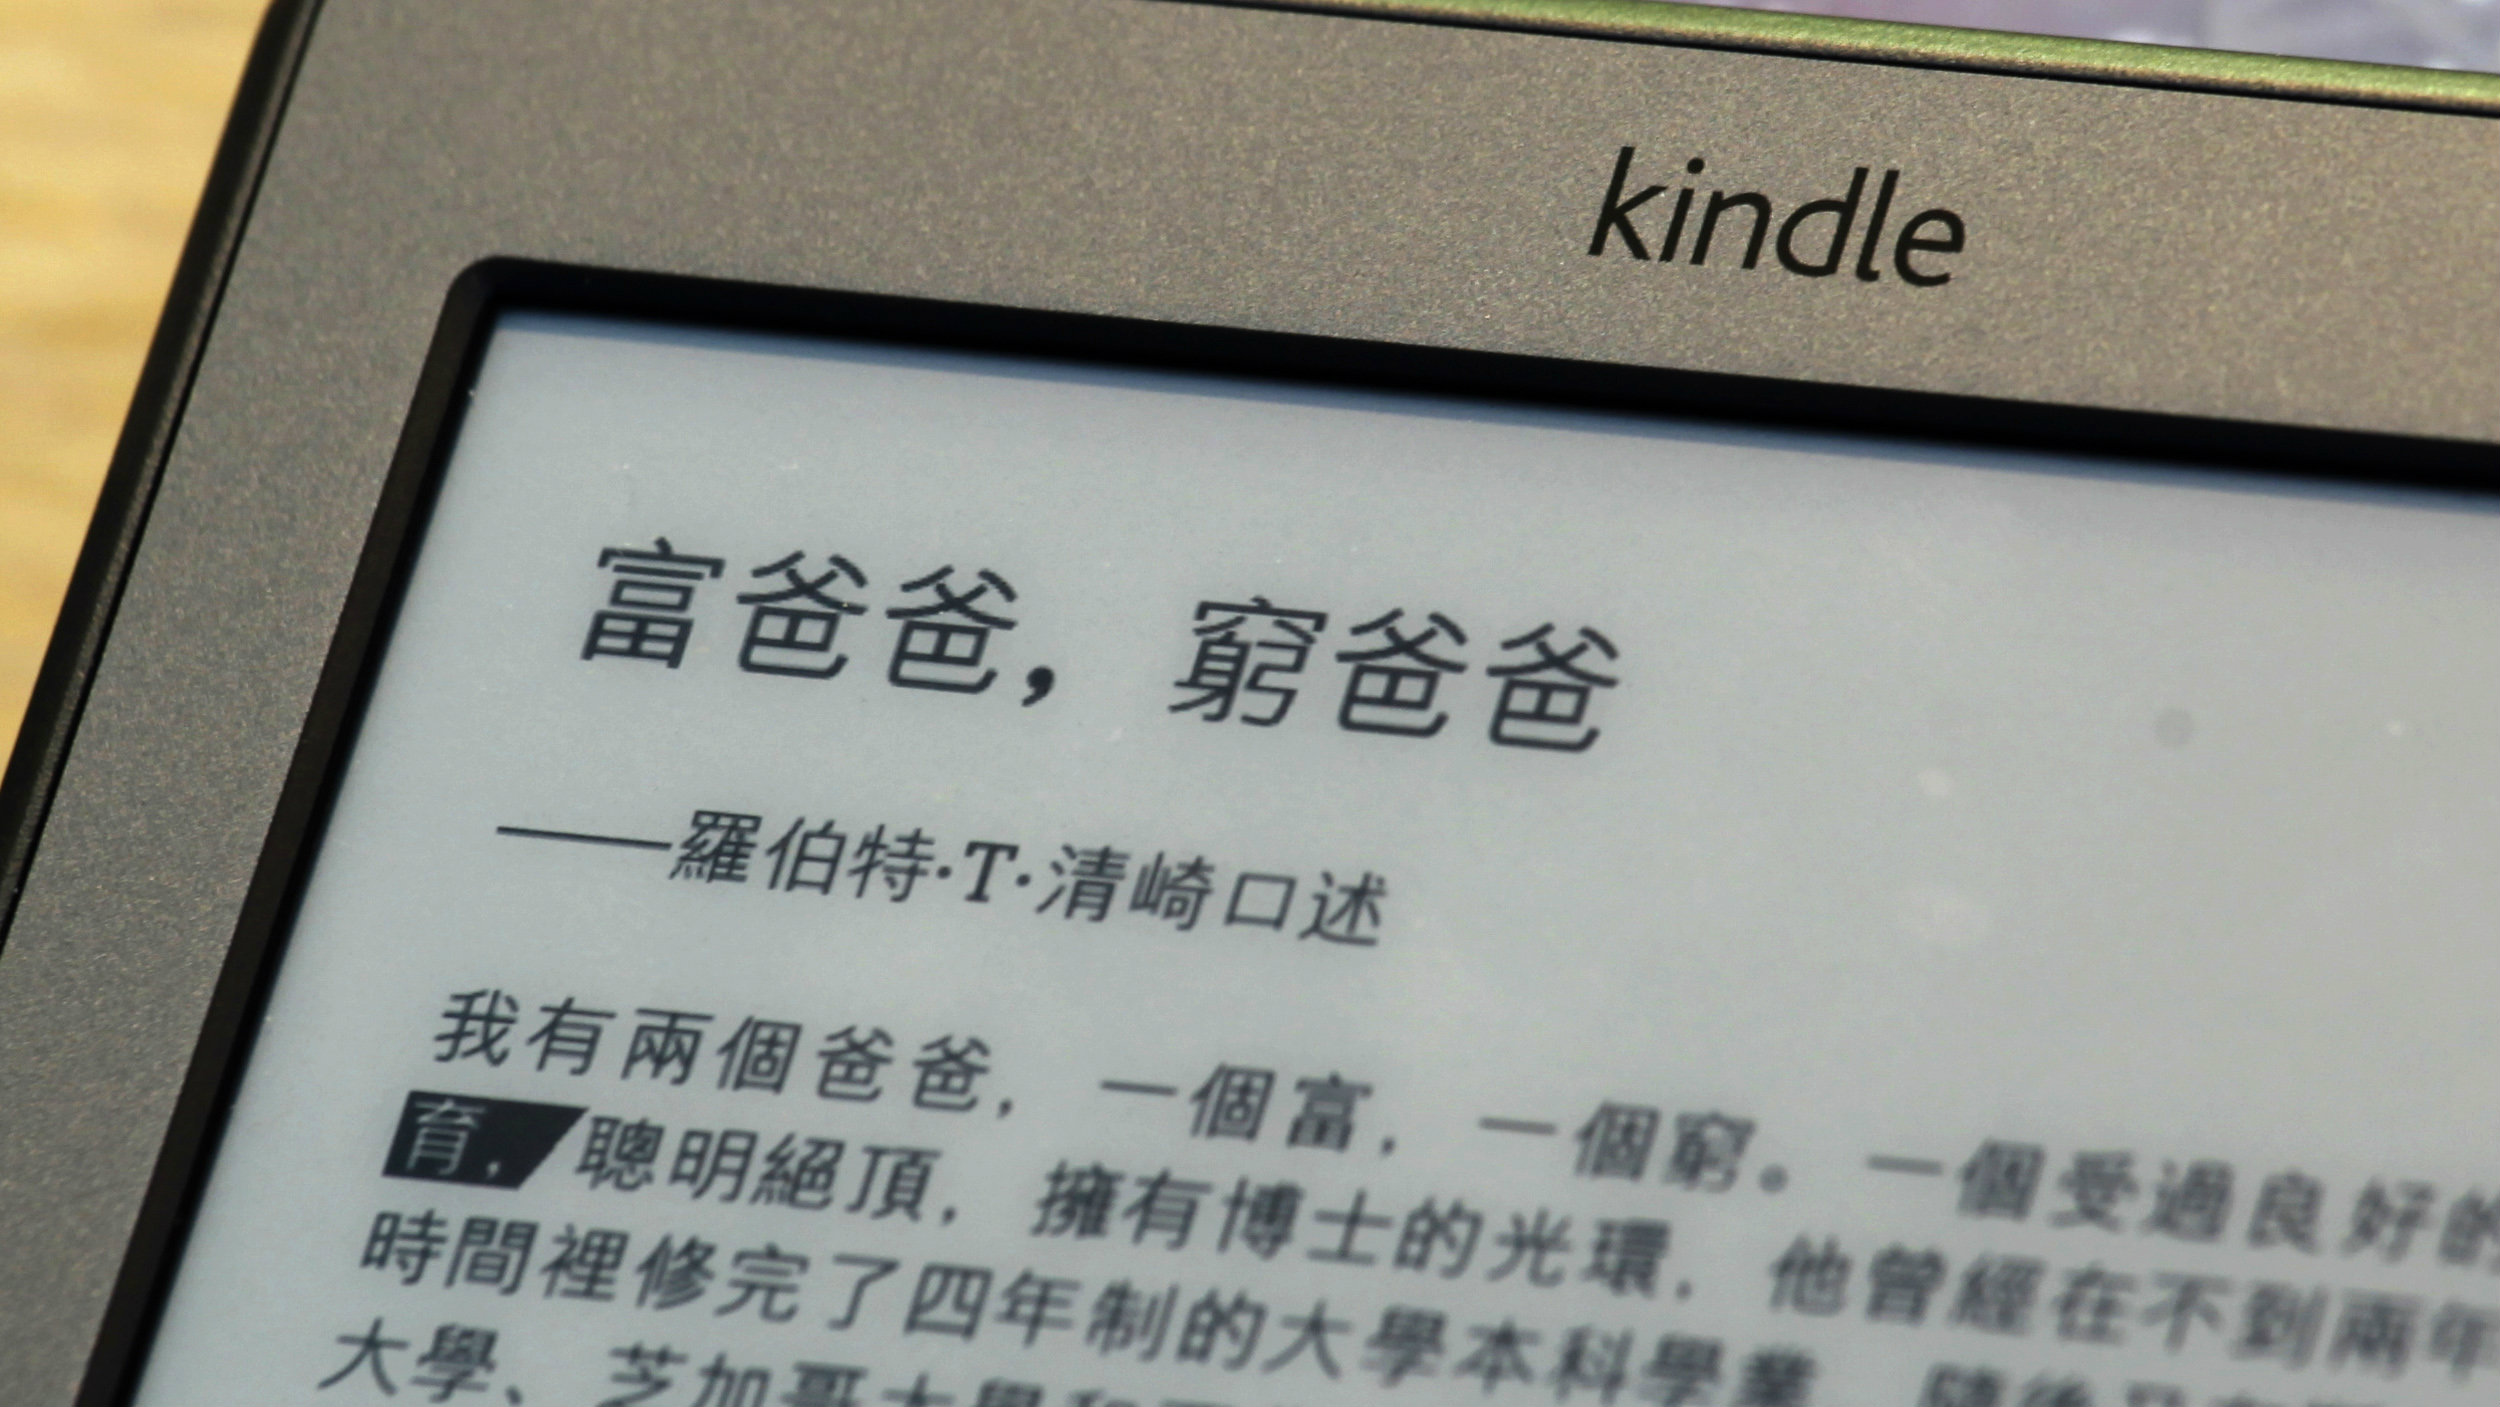 """An Amazon Kindle displays a section of the Chinese edition of """"Rich Dad, Poor Dad"""" at the e-Book corner of the Hong Kong Book Fair July 18, 2012. More than 530 exhibitors from 23 countries and regions took part in the territory's biggest book fair, which opened on Tuesday through July 24."""